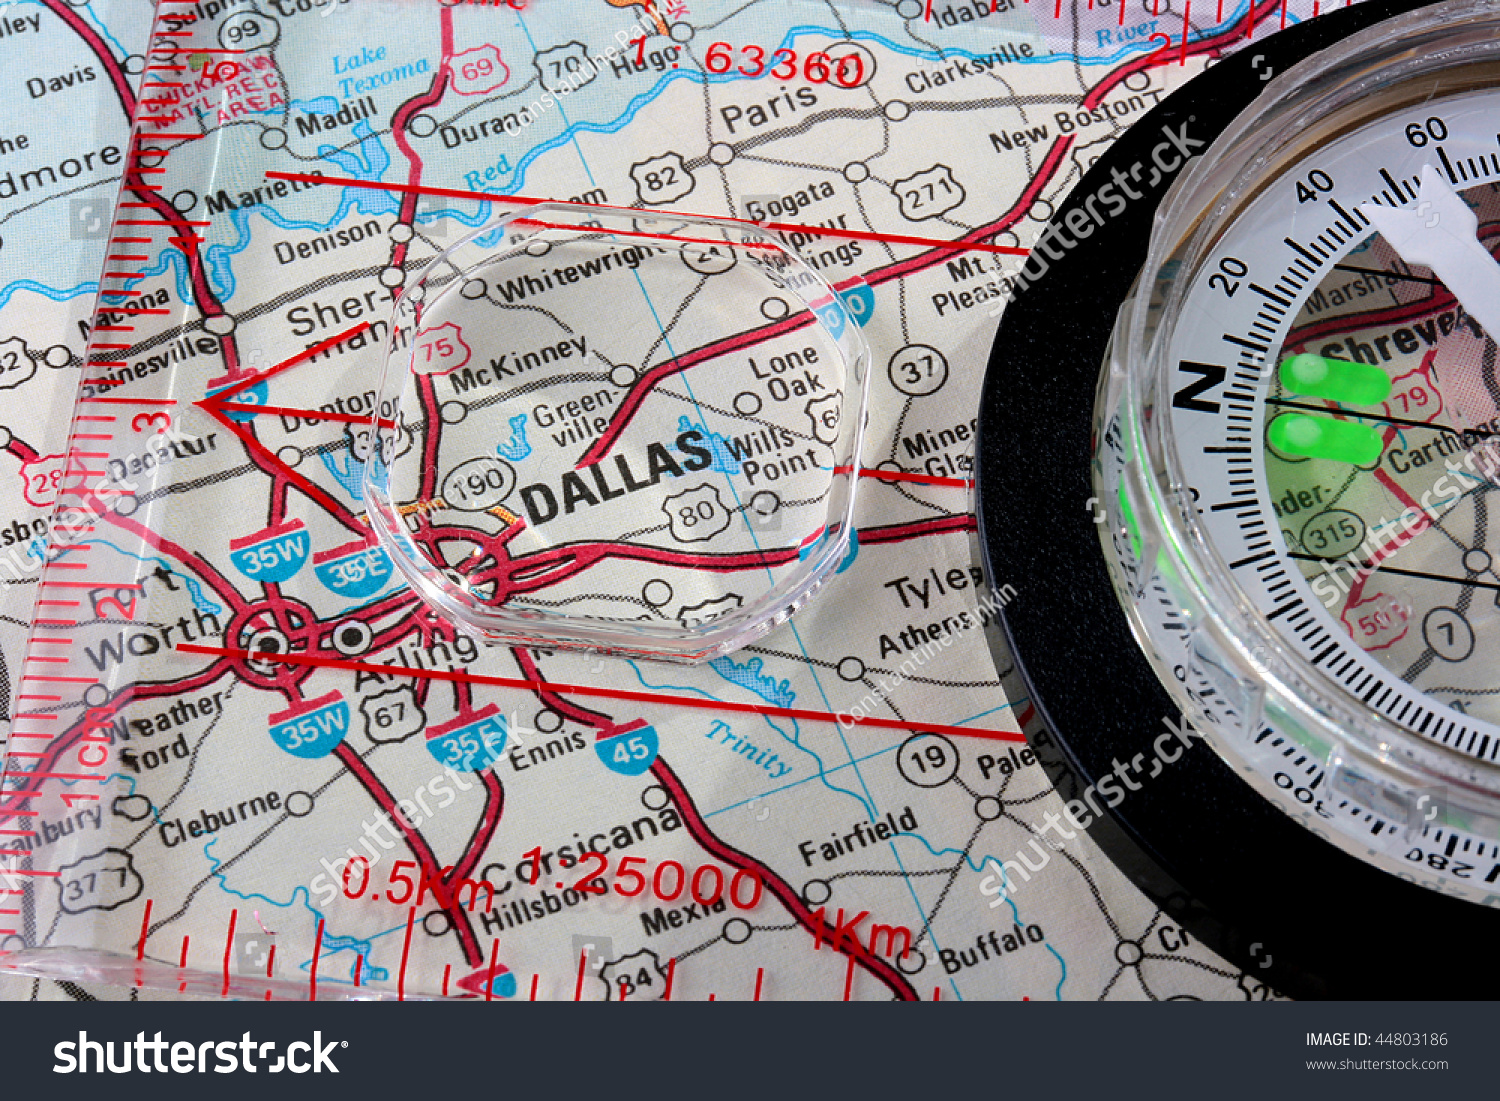 Usa Map City Dallas Compass Magnifying Stock Photo - Usa map with compass